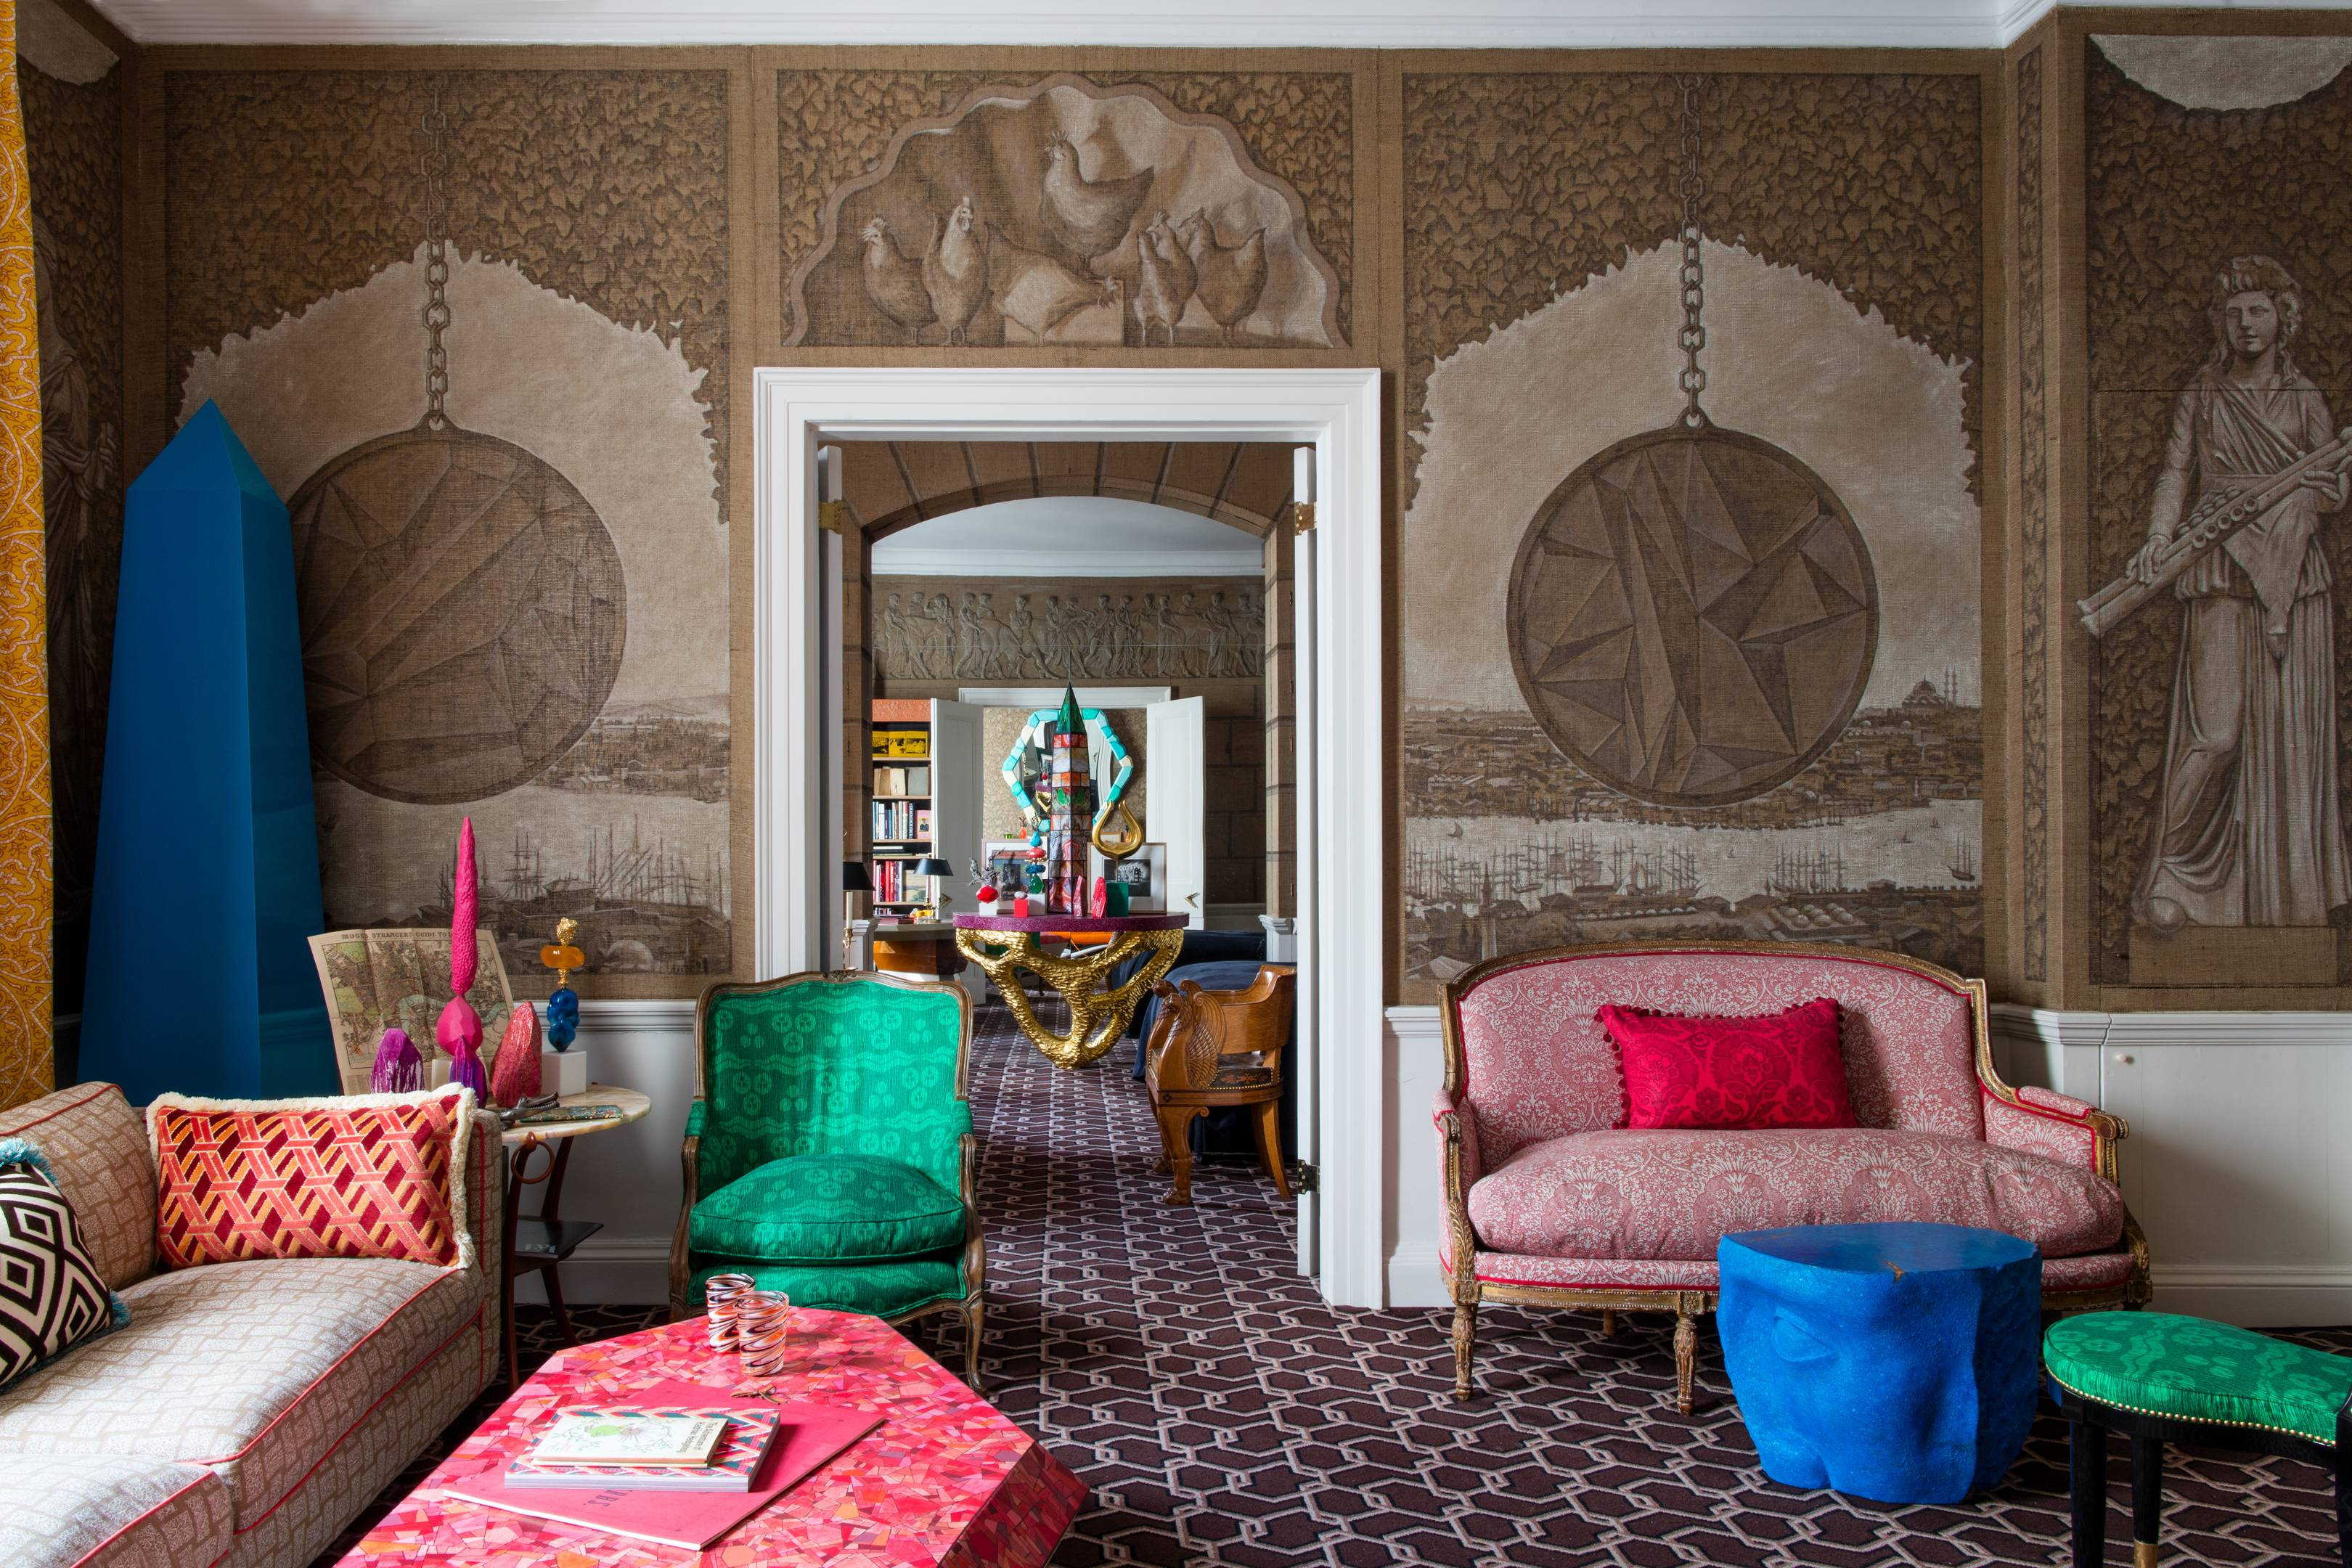 Ashley Hicks on the historical inspiration behind his interior designs